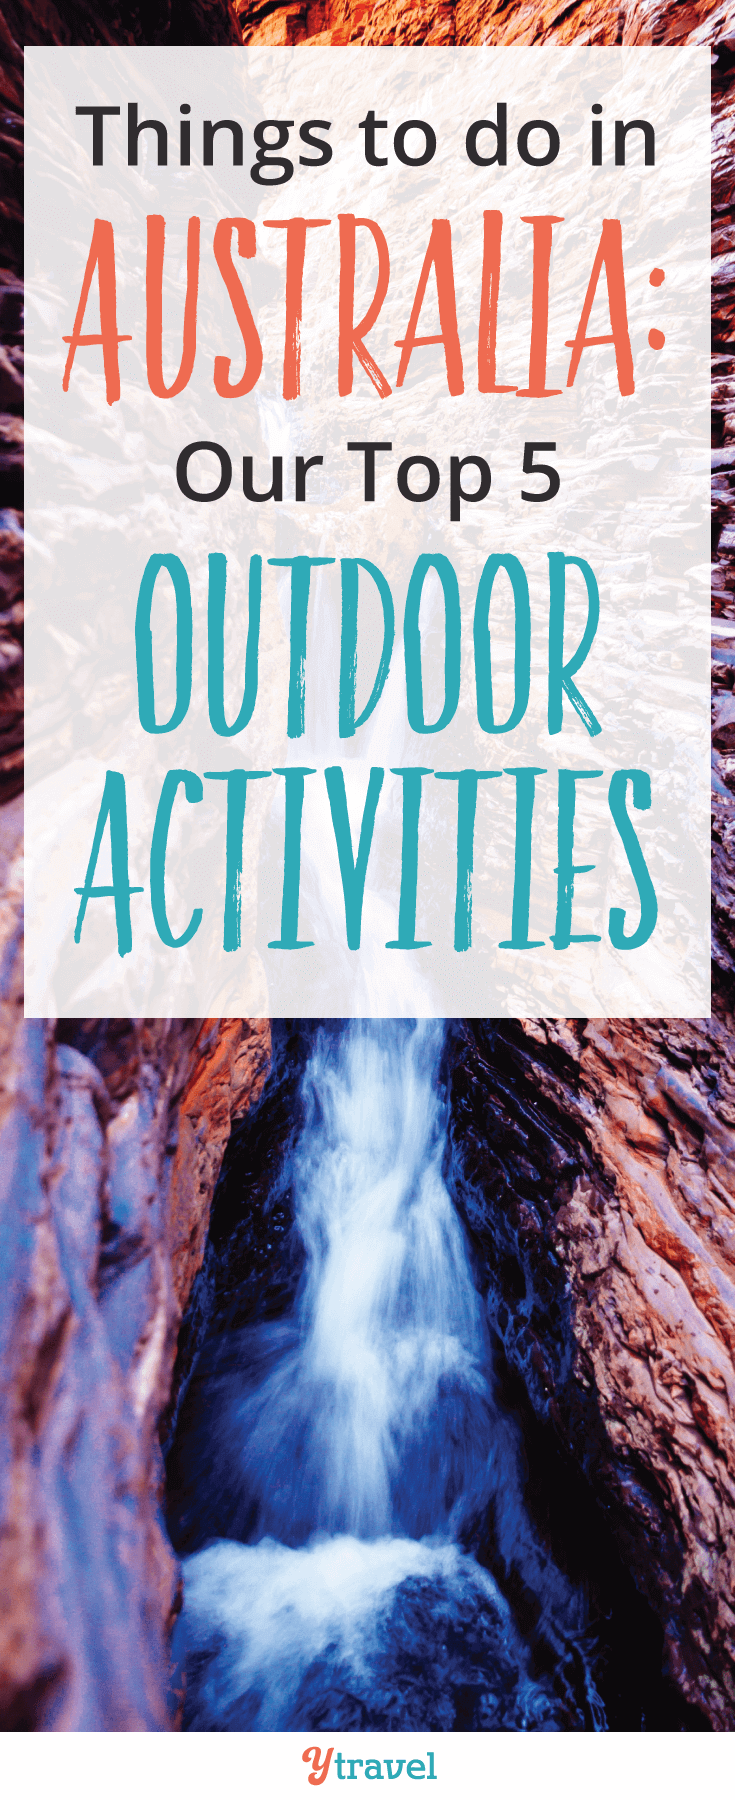 Looking for things to do in Australia? Check out our top 5 awesome outdoor activities!